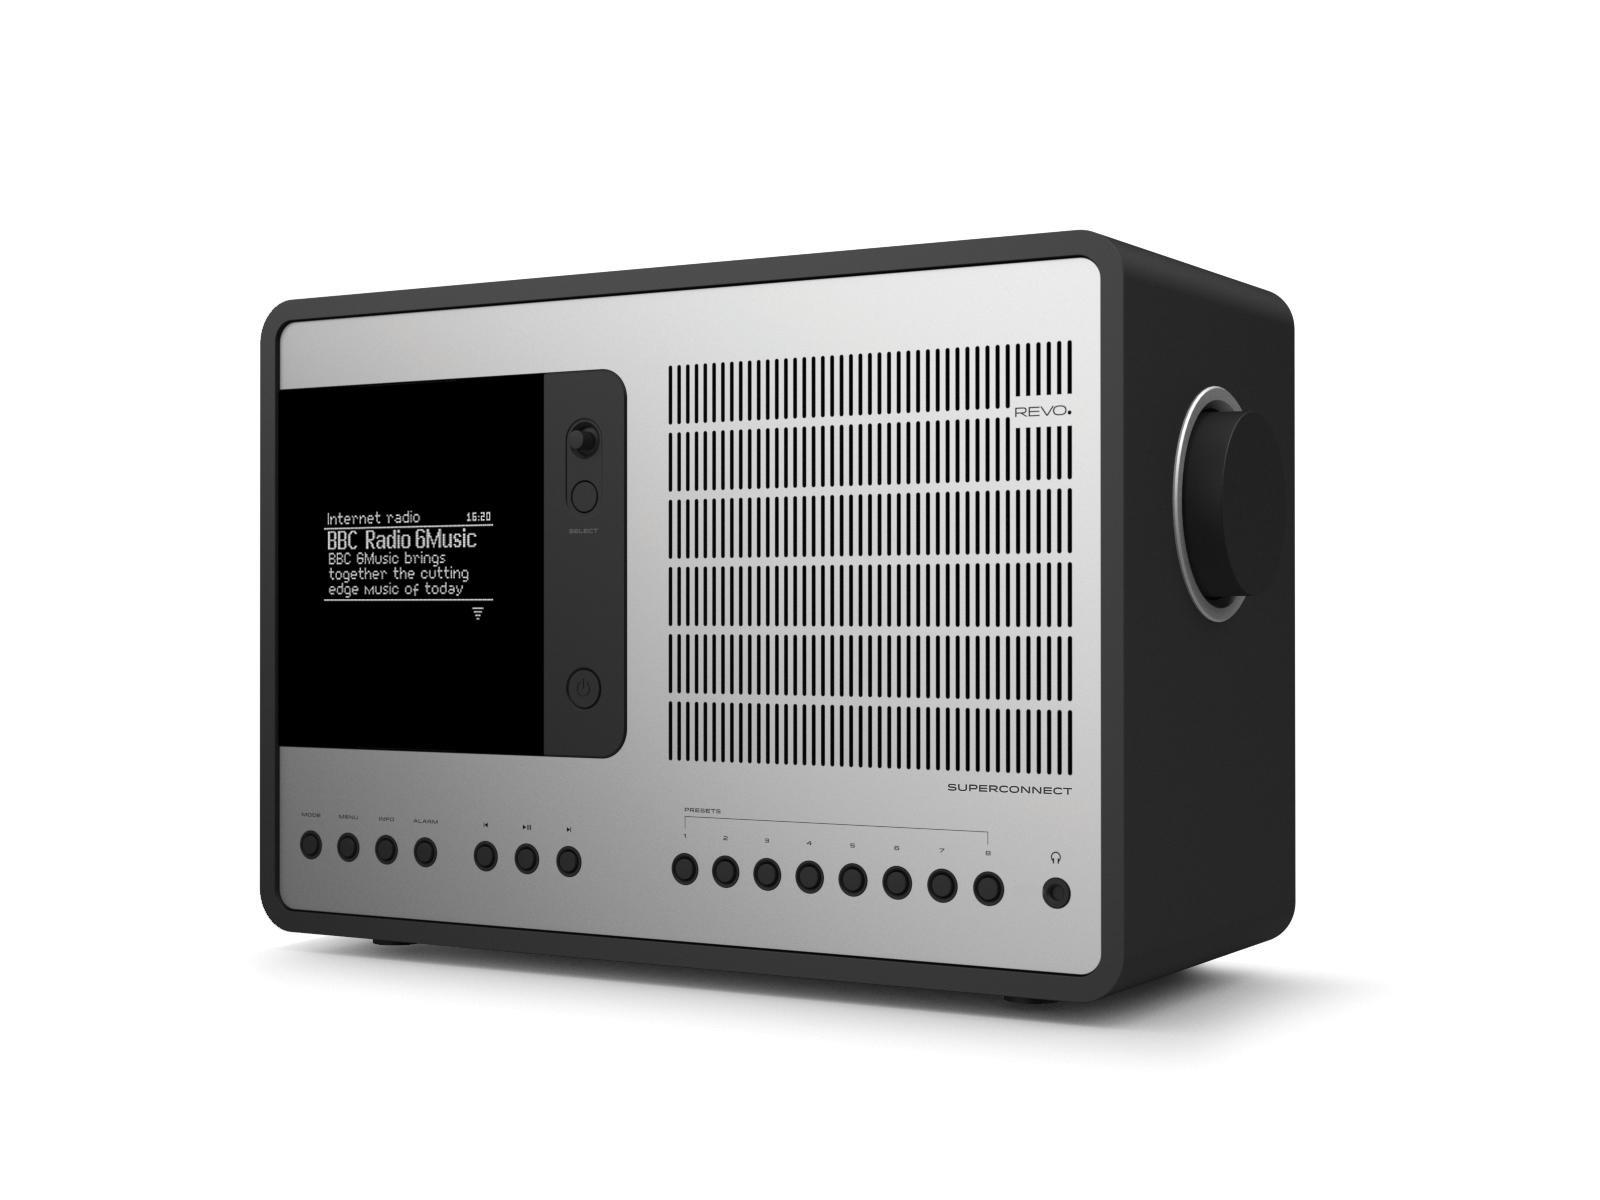 Revo SuperConnect DAB Internet Radio With Spotify - Matt Black / Silver